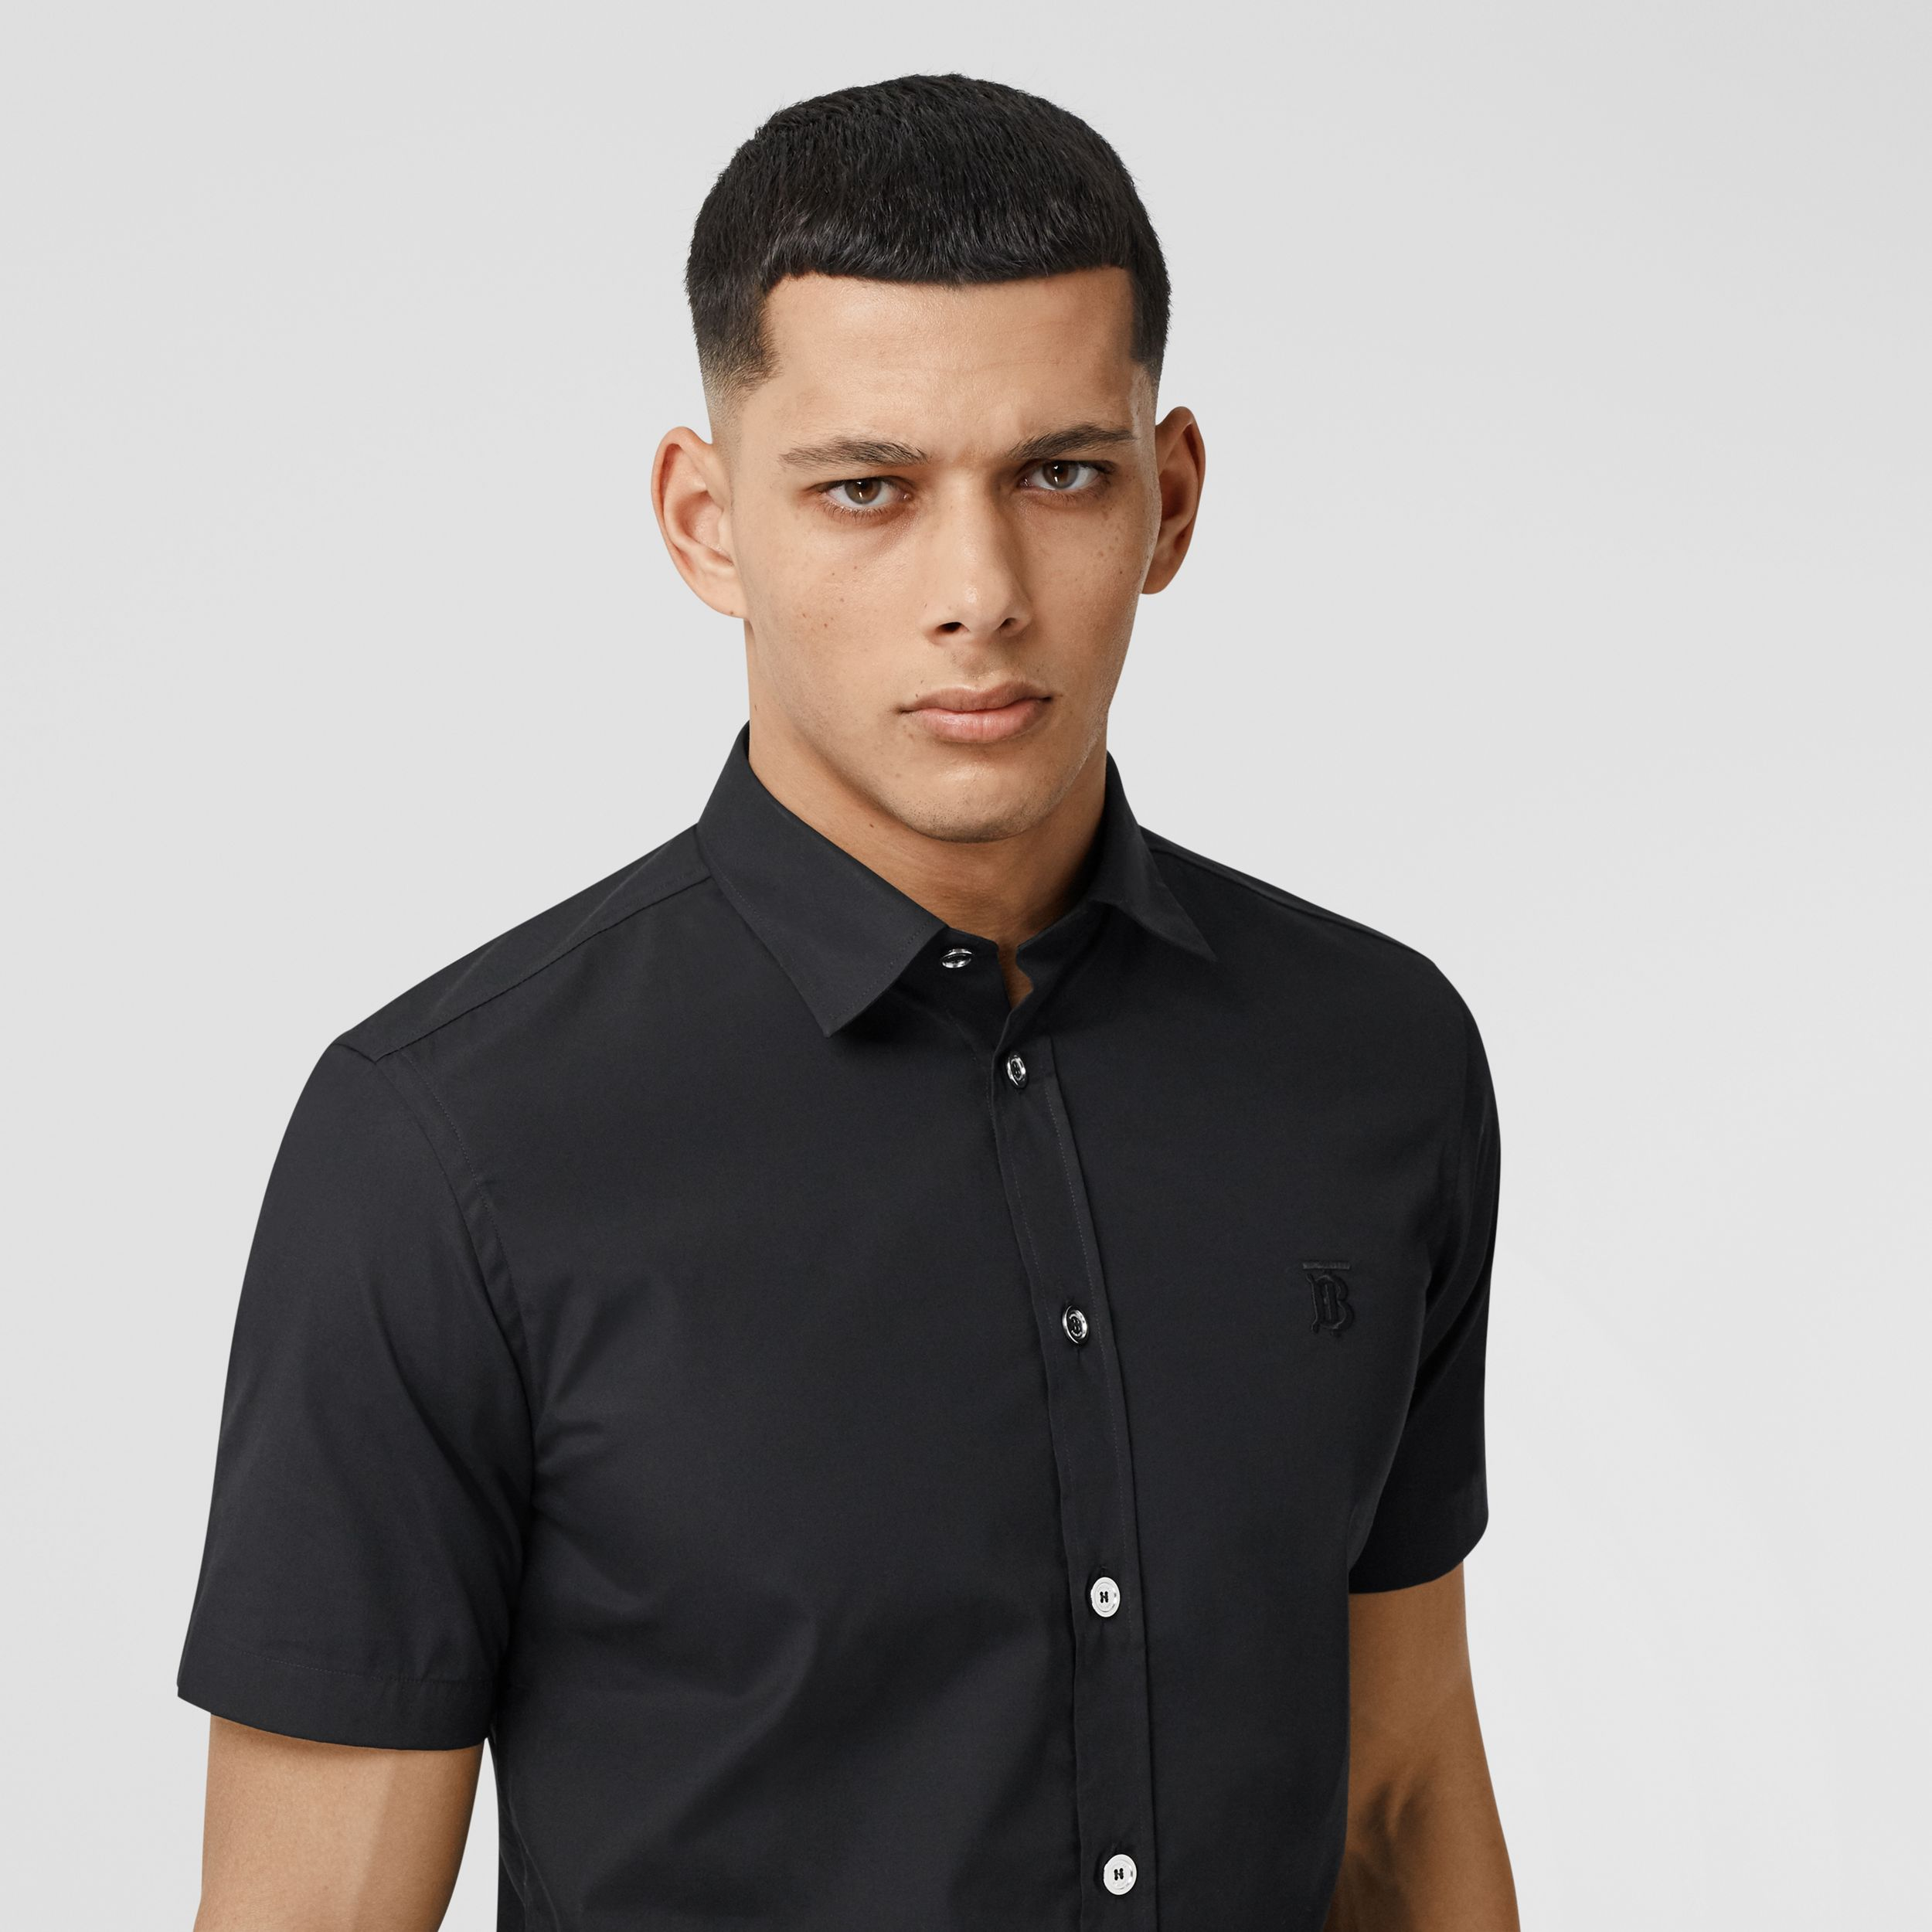 Short-sleeve Monogram Motif Stretch Cotton Shirt in Black - Men | Burberry Hong Kong S.A.R. - 2